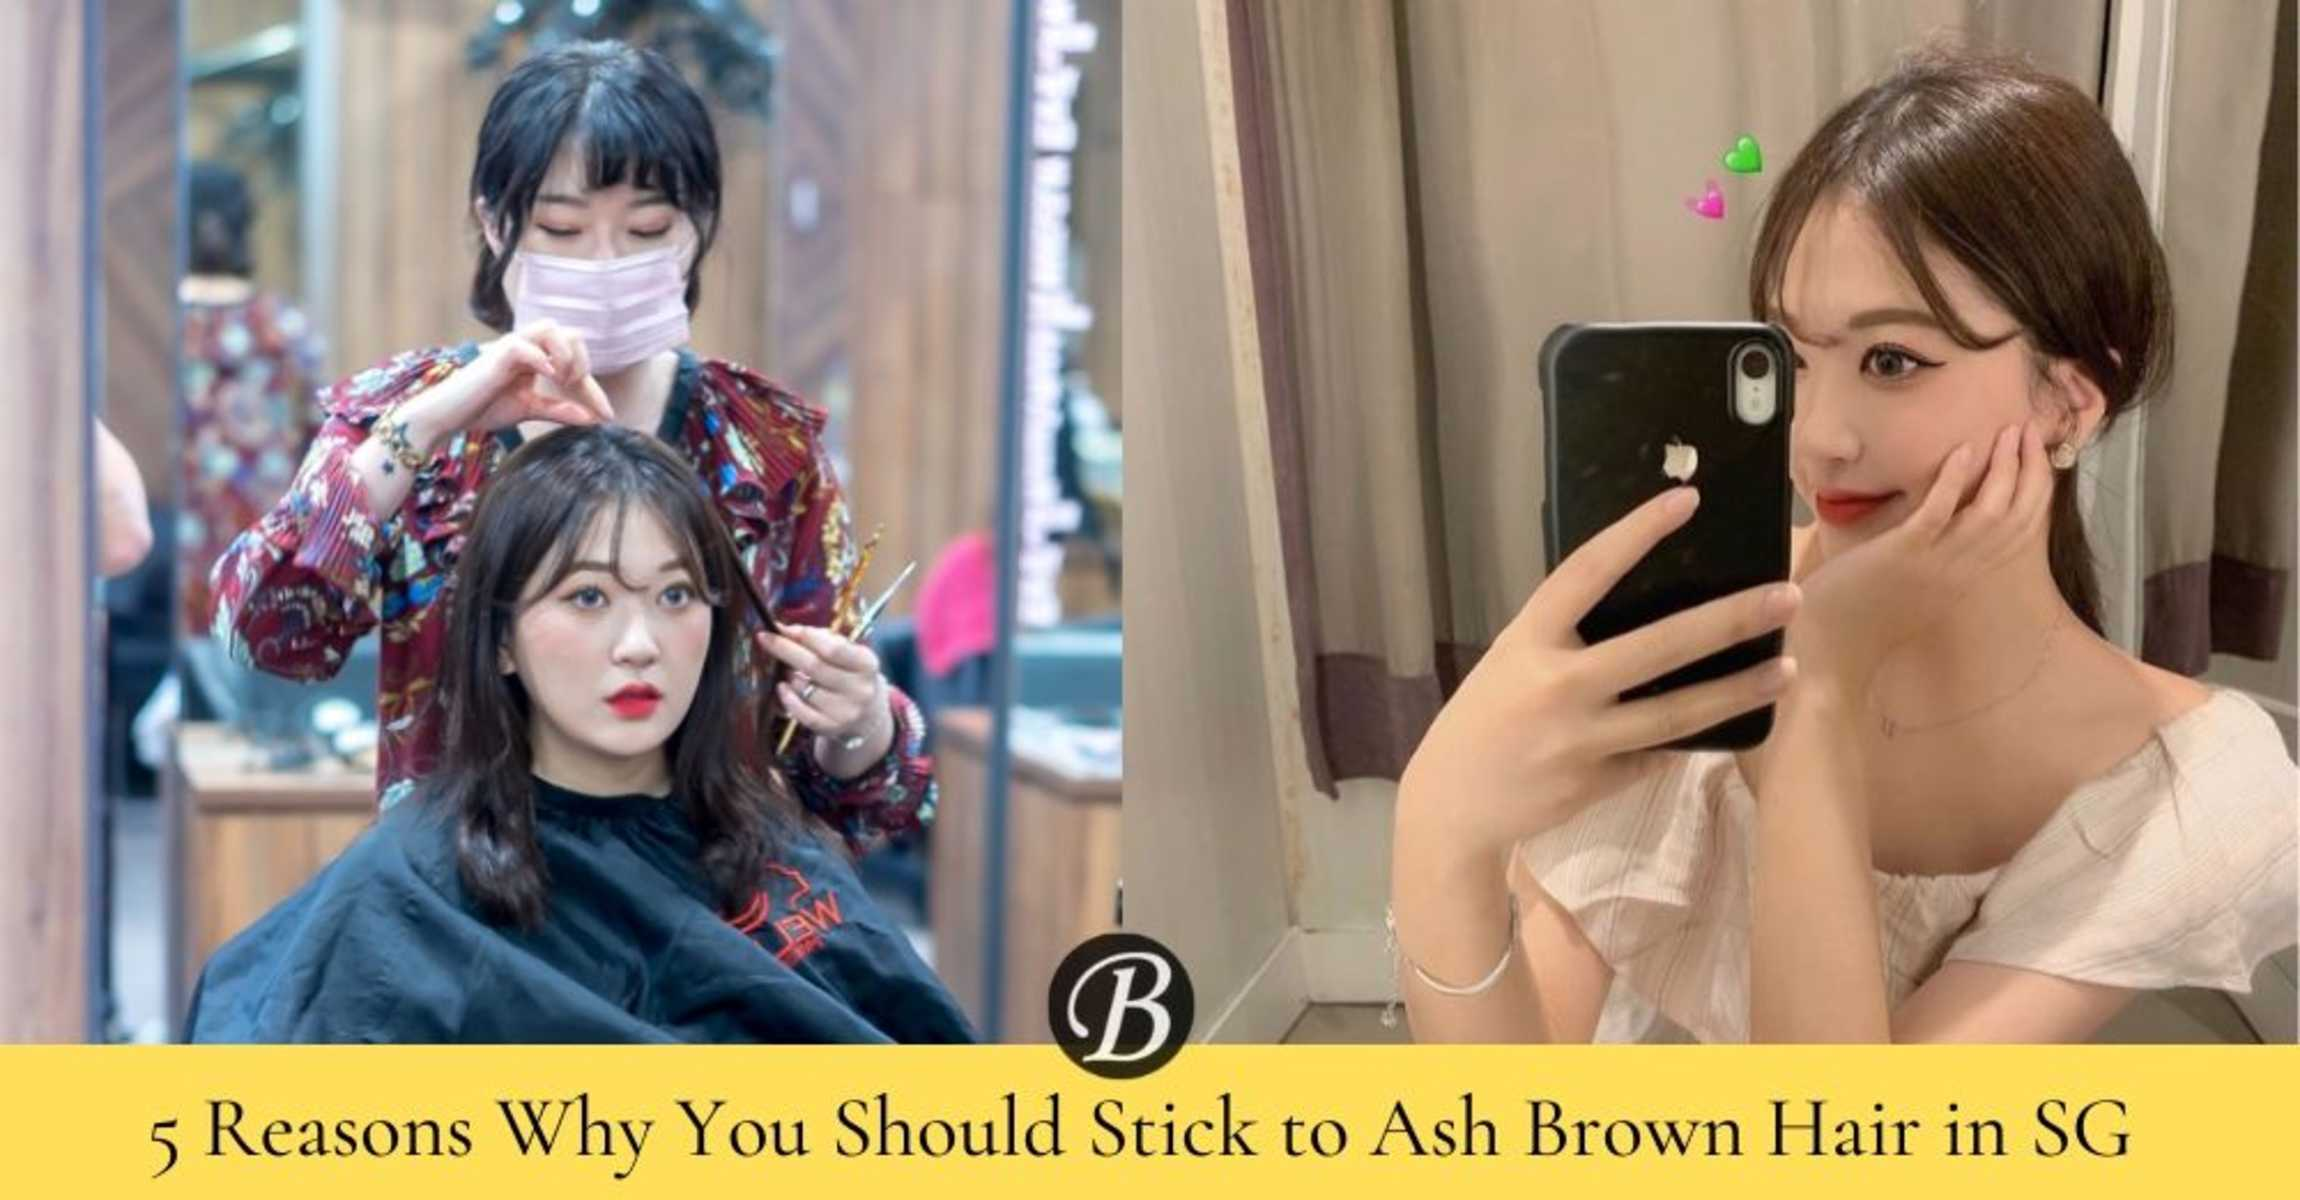 5 Reasons Why You Should Stick to Ash Brown Hair Colour in Singapore